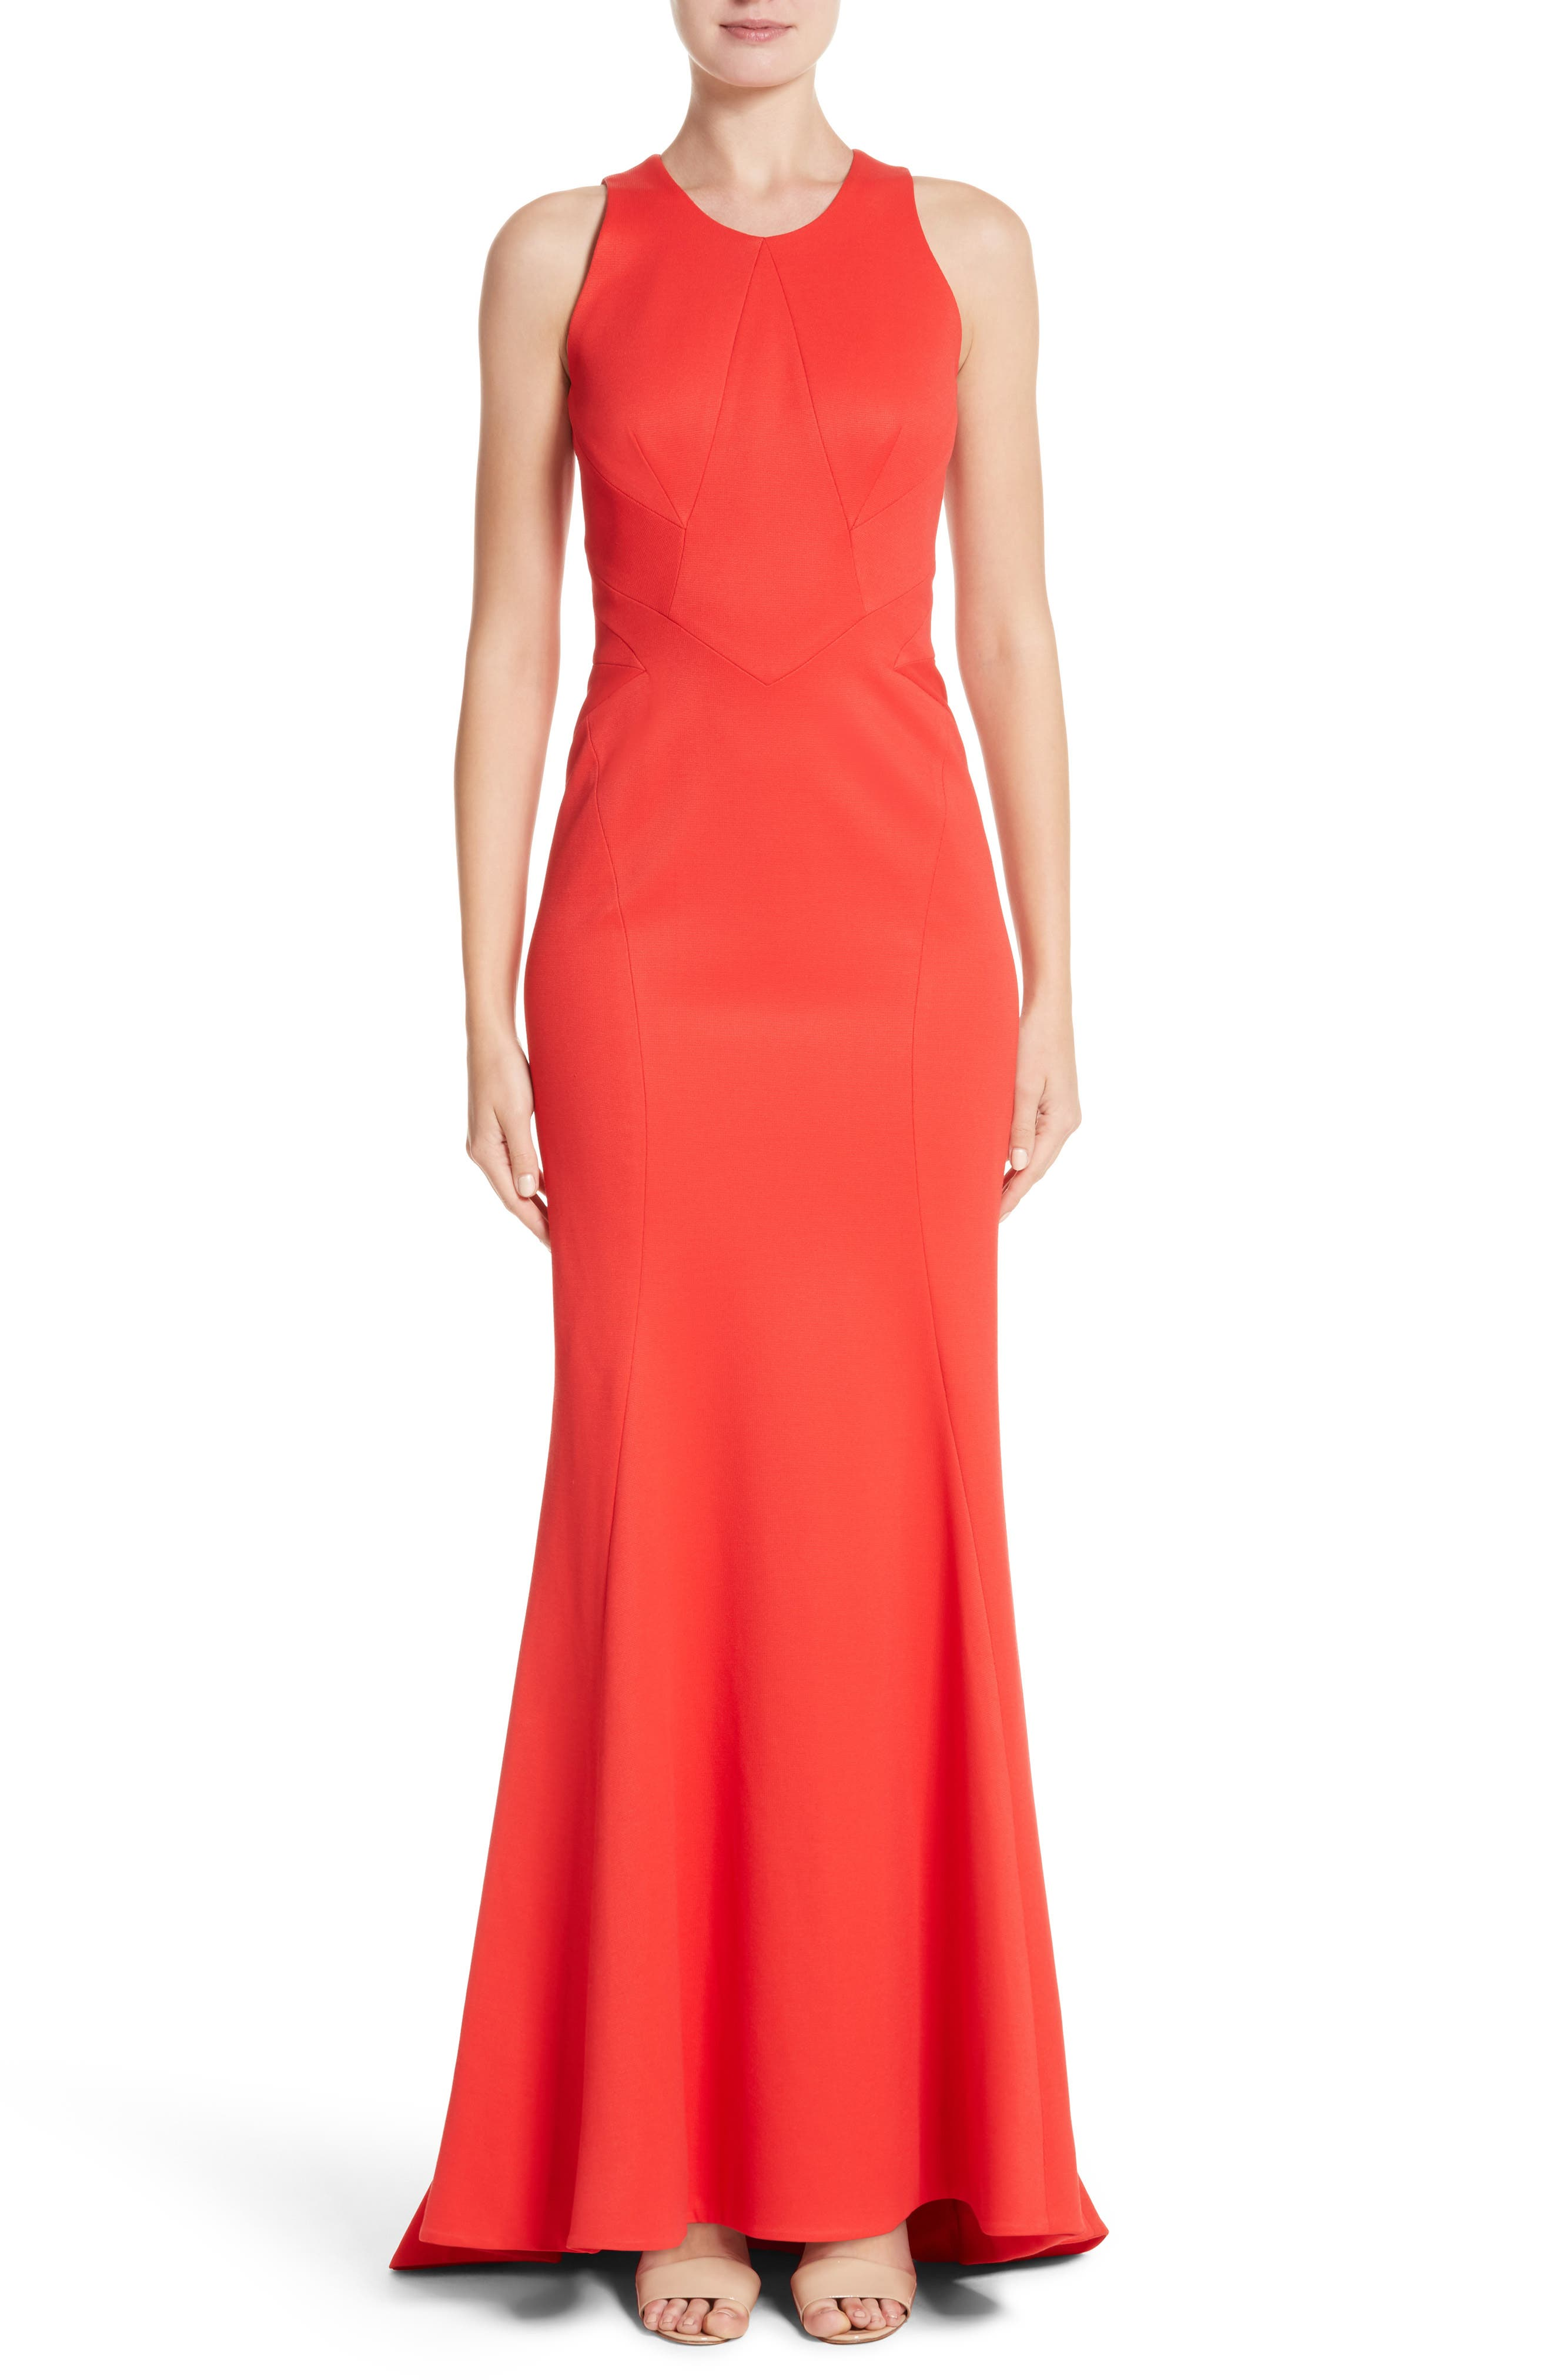 Zac Posen Structured Knit Trumpet Gown